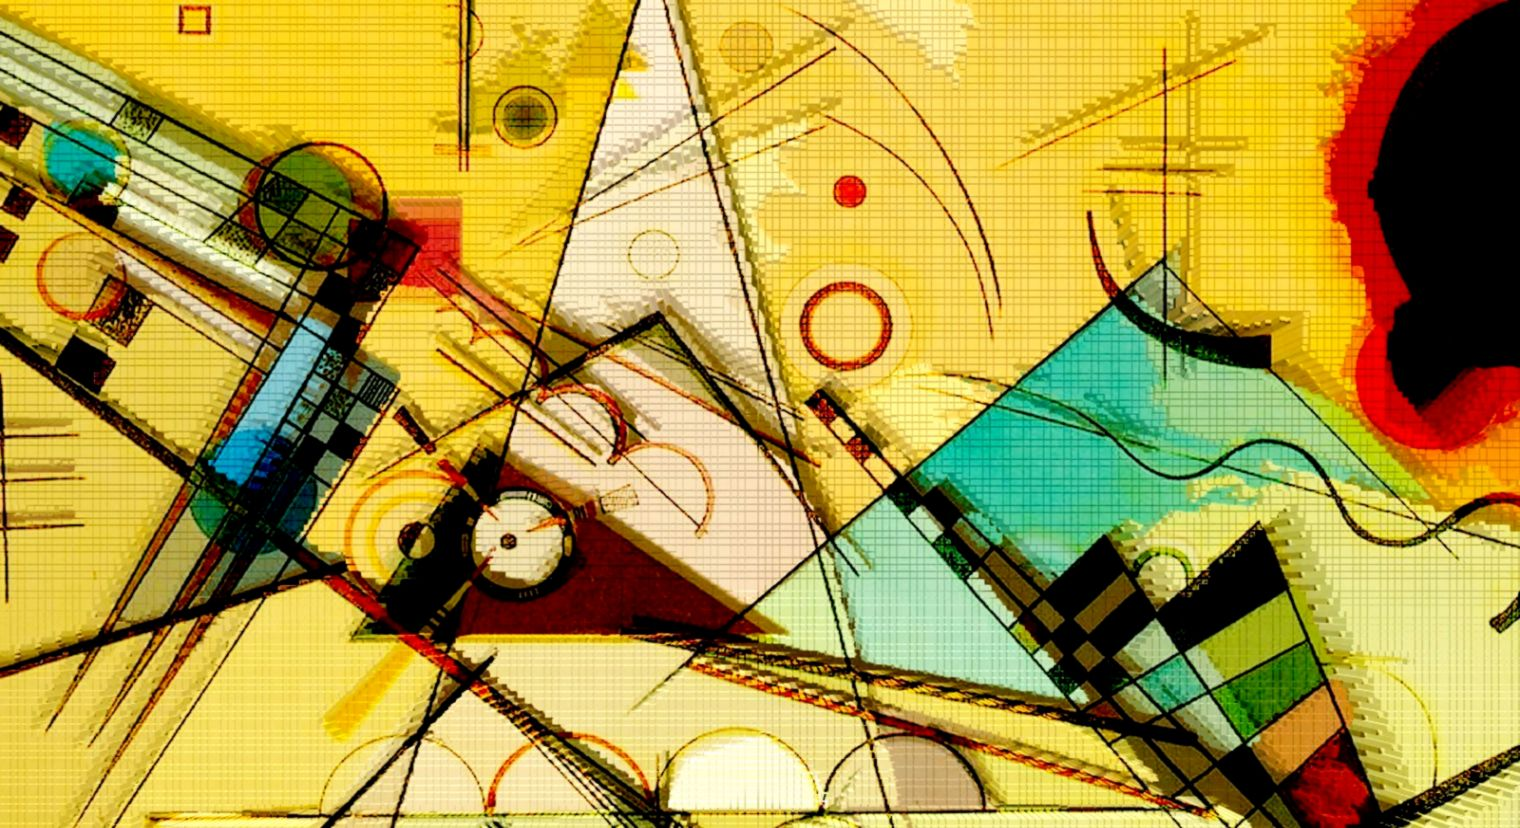 Abstract Geometry Wallpapers Hd Wallpapers Just Do It